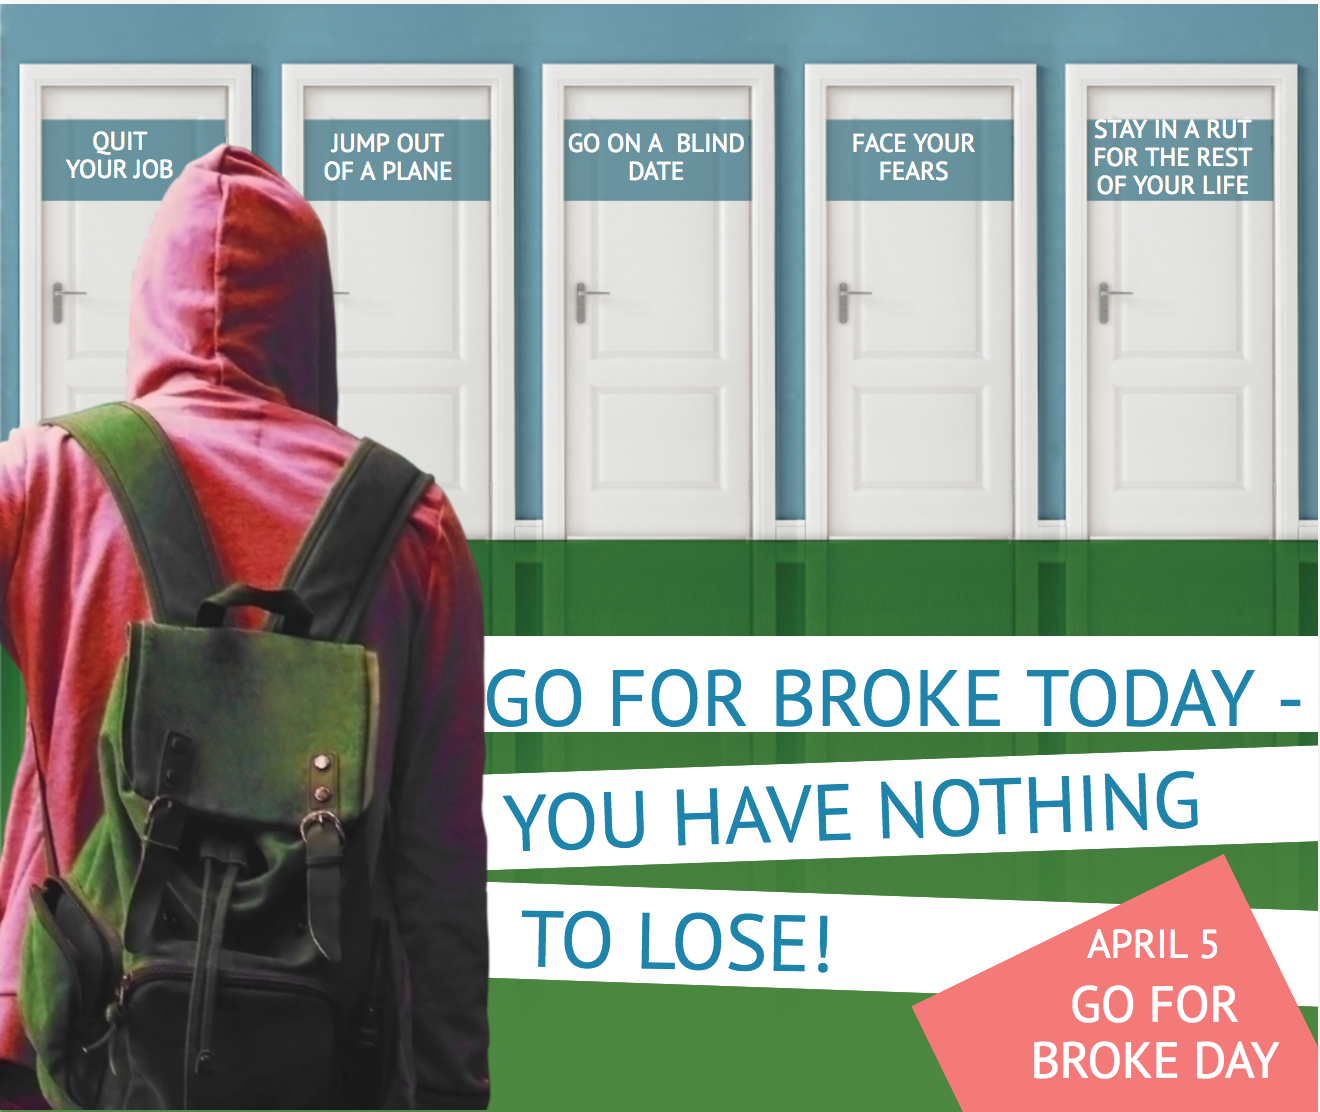 go for broke day image